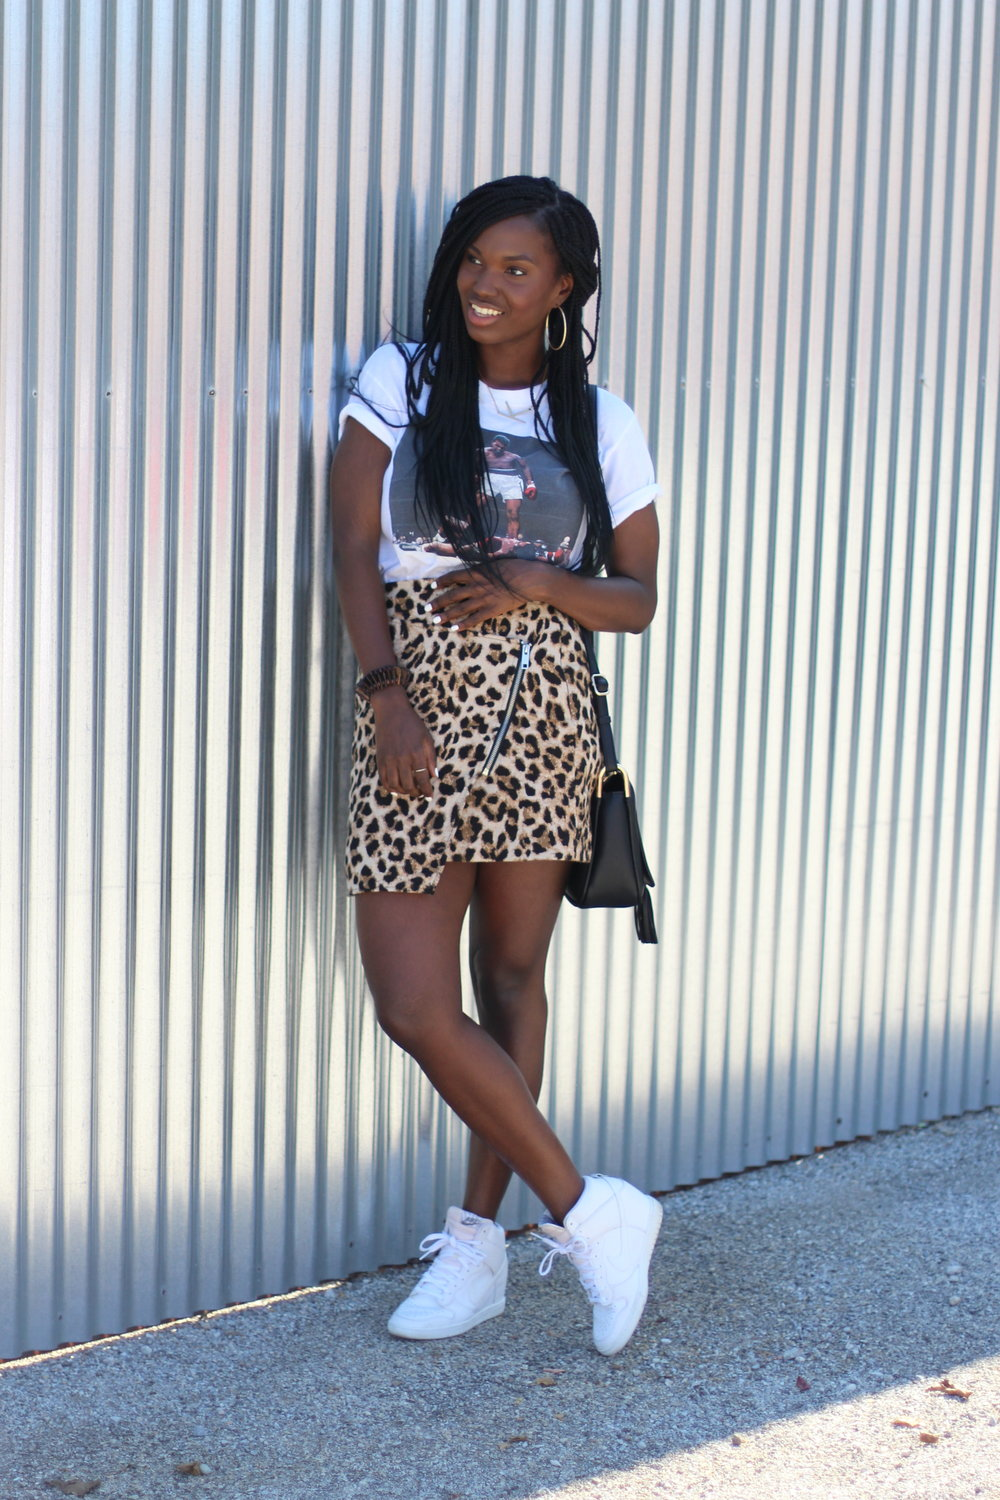 TSHIRT: Urban Outfitters Outlet SKIRT/BAG: H&M SHOES: NIKE CROC DUNKS